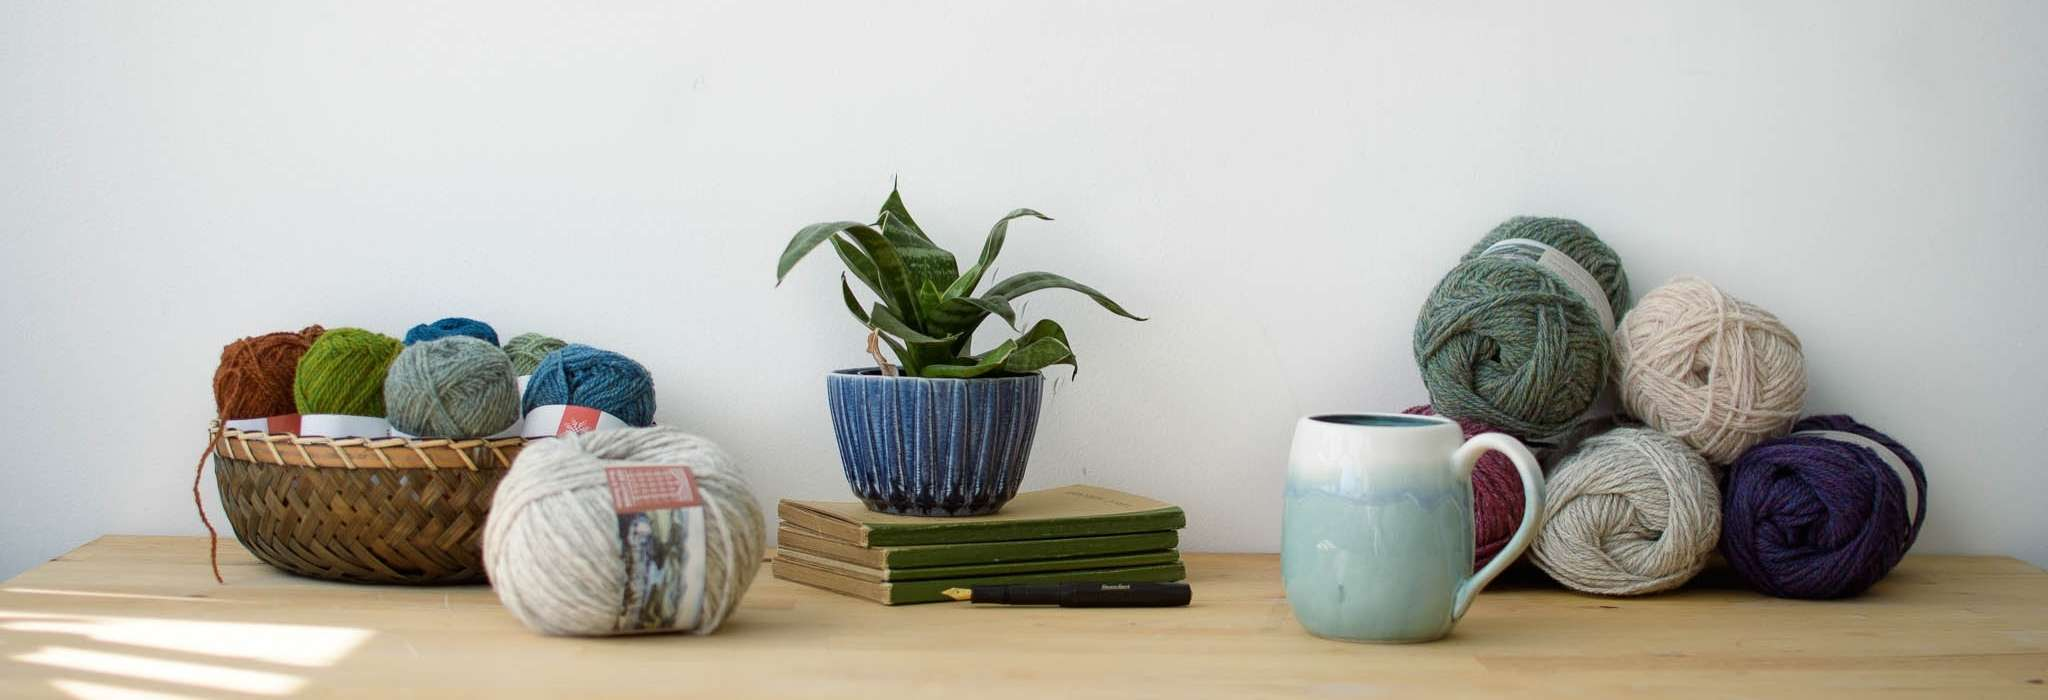 banner image shows a table with yarn, a plant and a mug